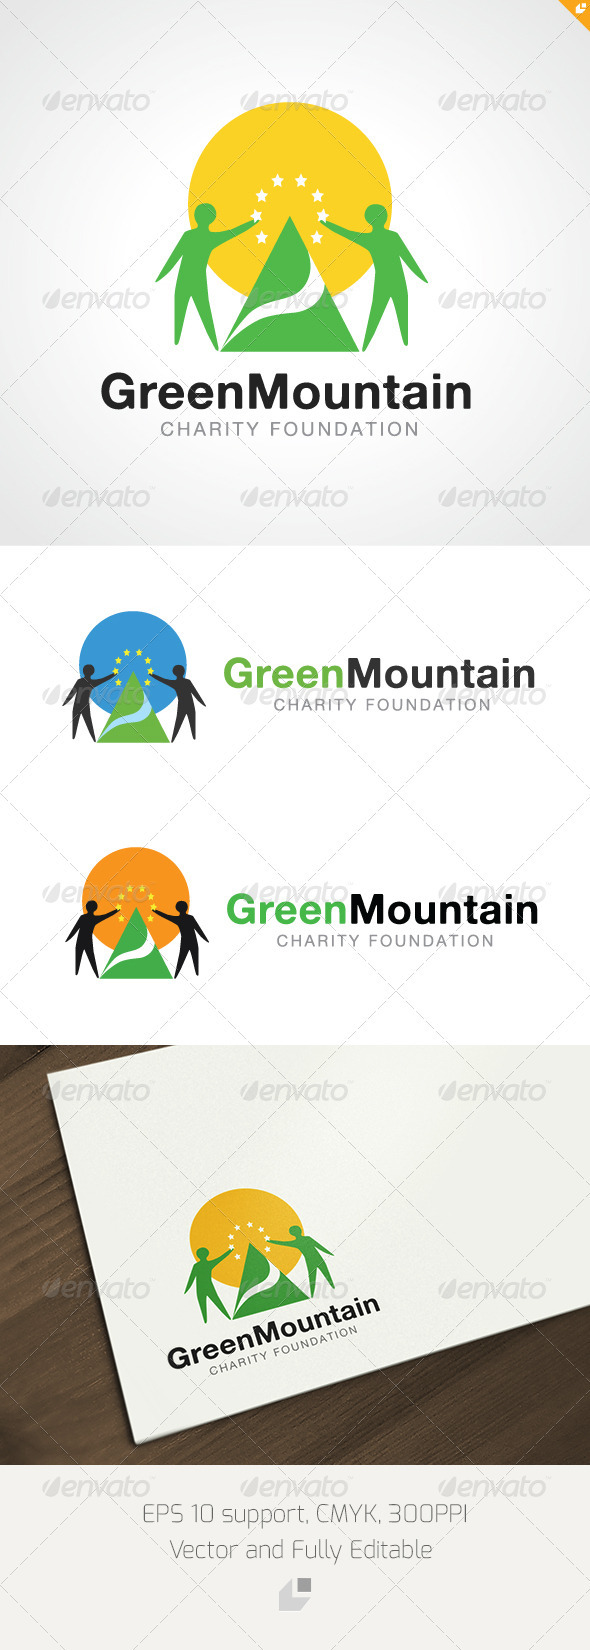 GraphicRiver Geren Mountain Charity Foundation Logo 3307940